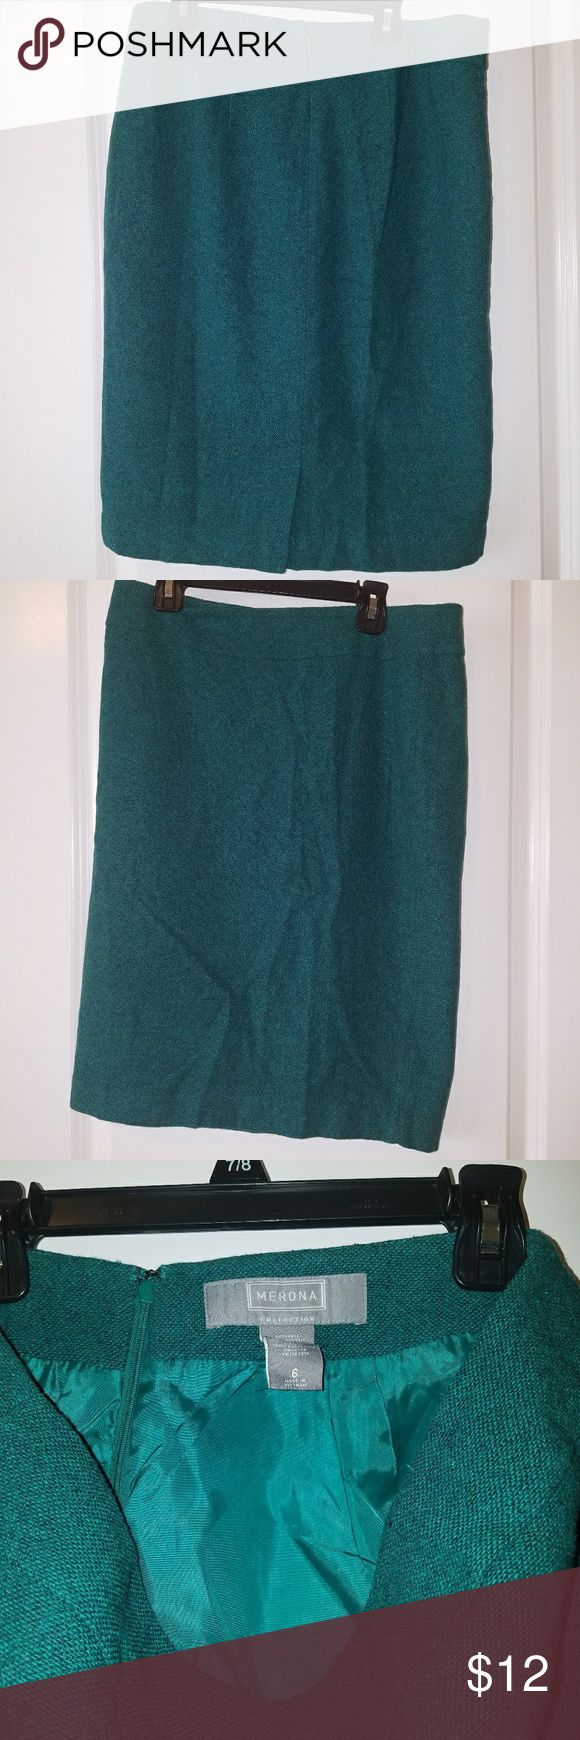 Merona green pencil skirt Tweed like material. Lined with split in back and invisible zipper. Beautiful emerald green color Merona Skirts